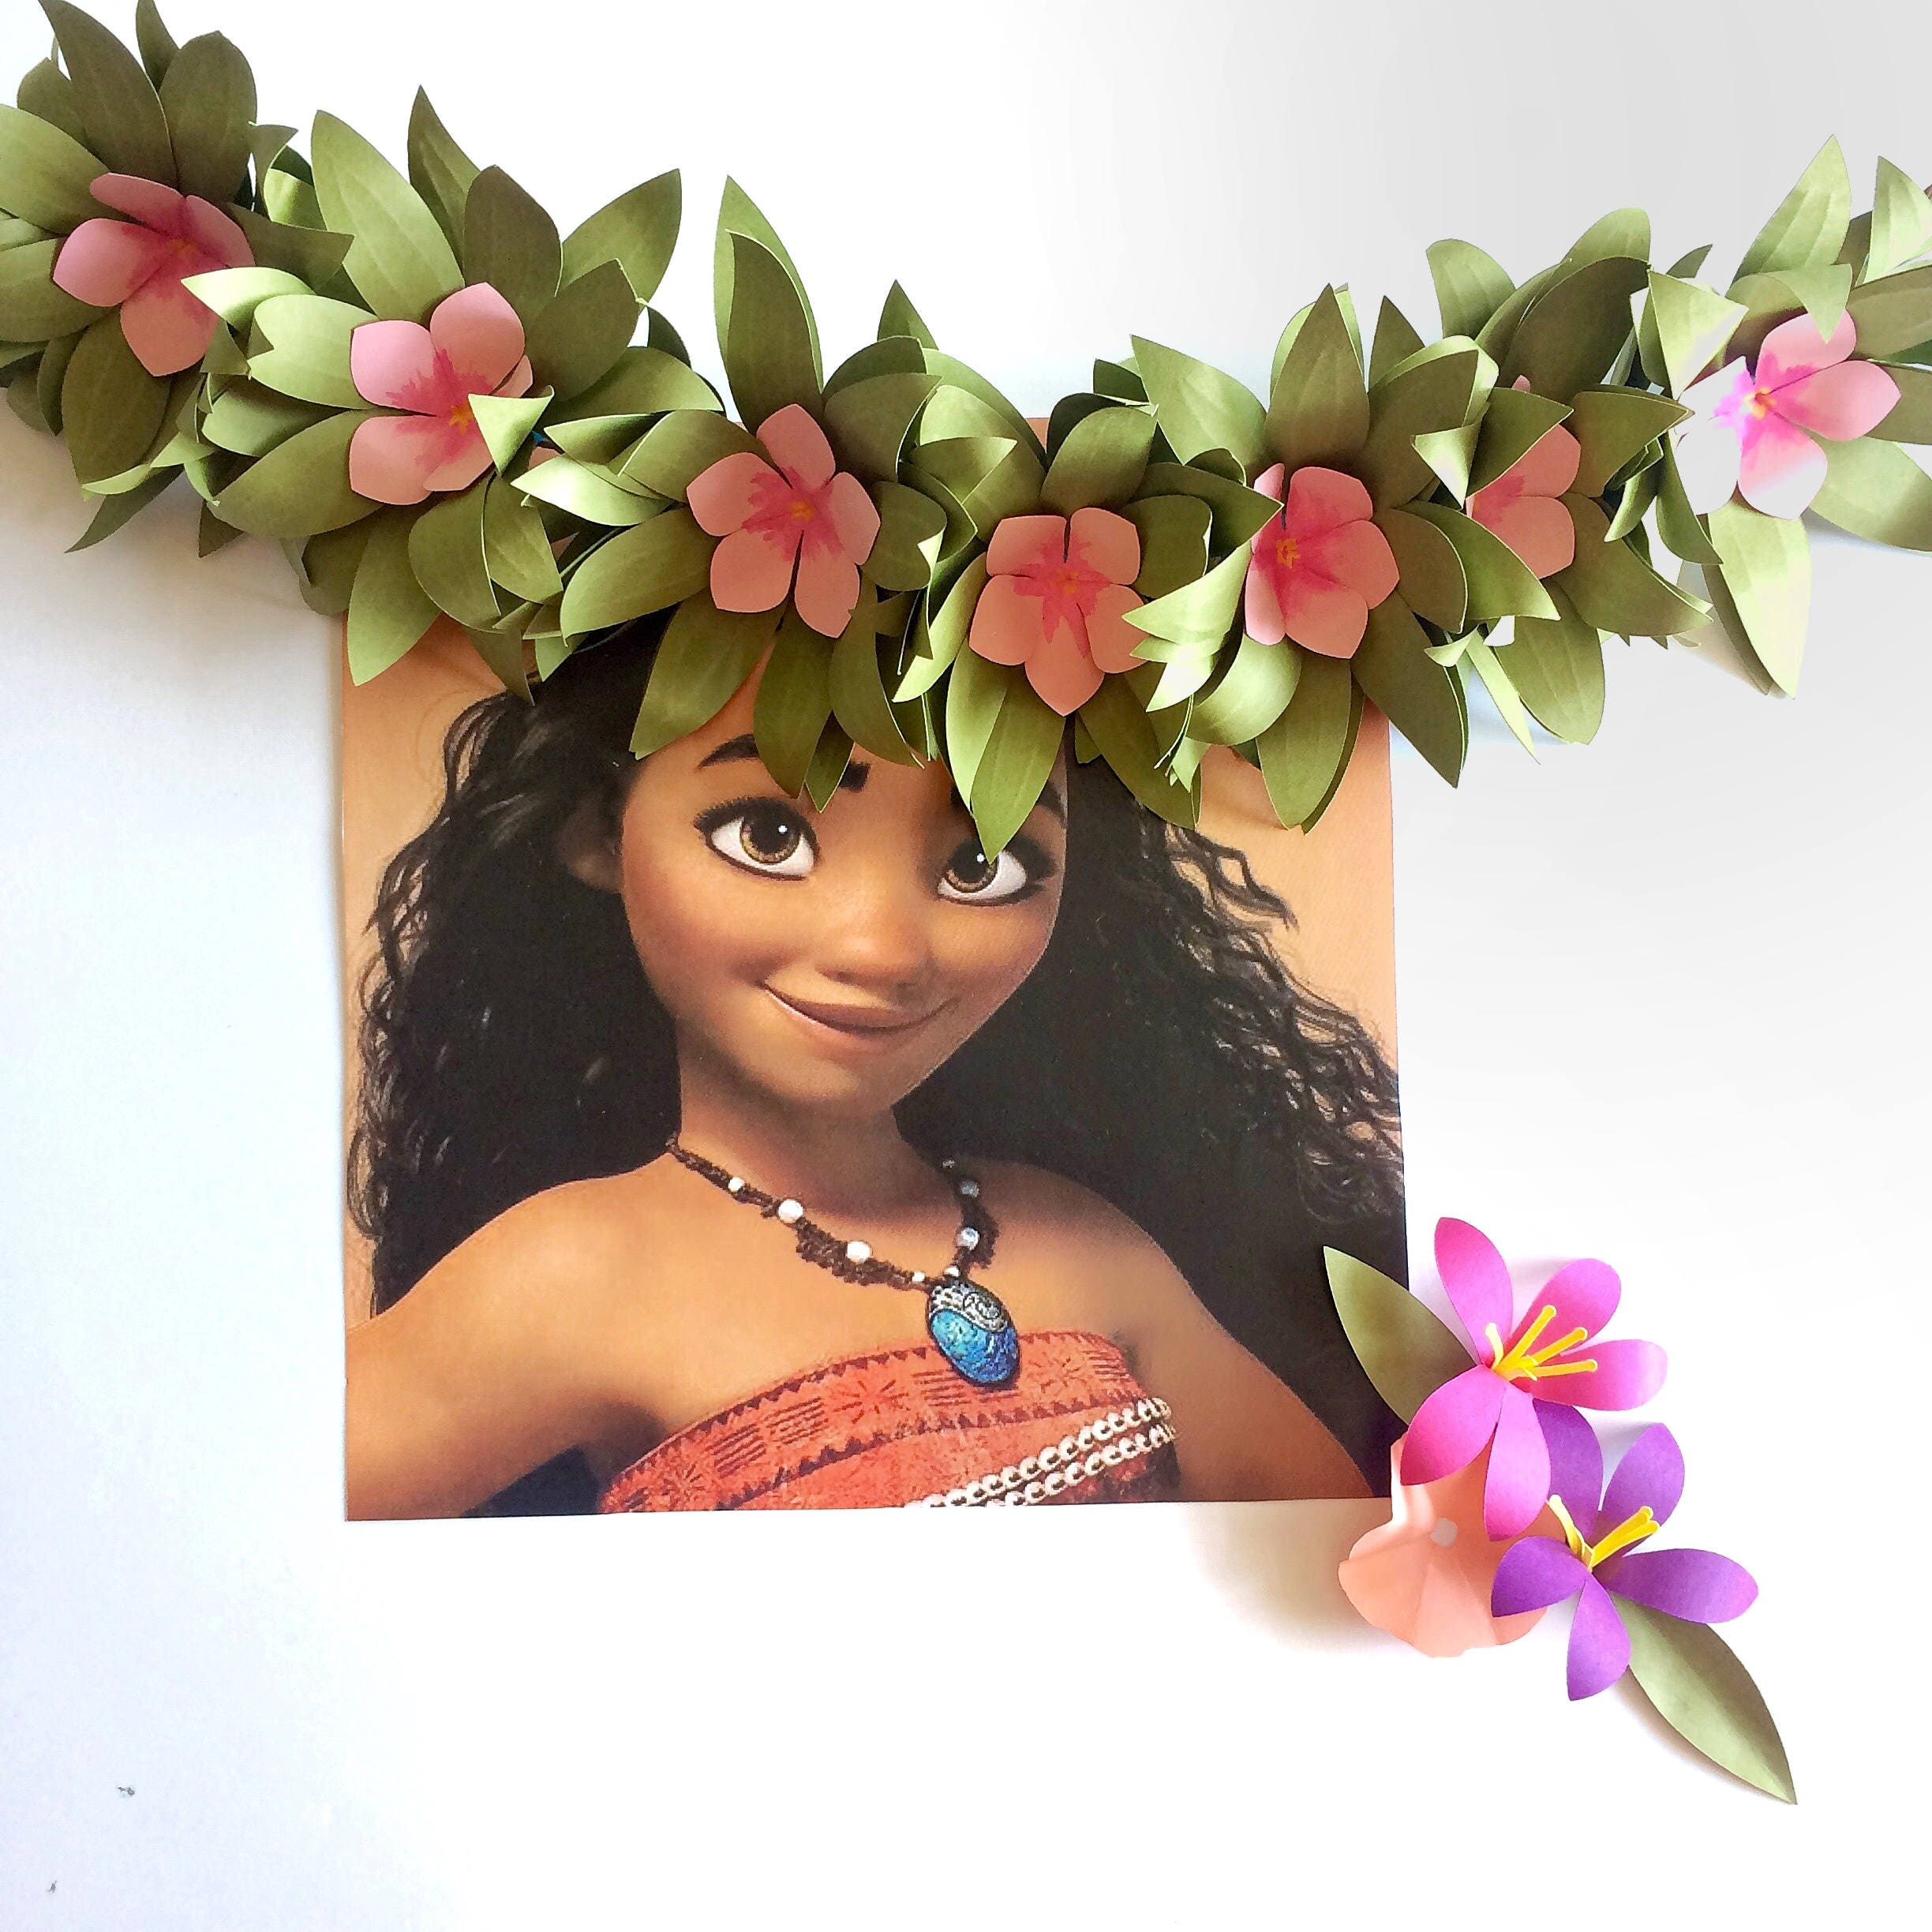 Flower crown tropical flower crown luau hawaiian flower crown flower crown tropical flower crown luau hawaiian flower crown paper flowers izmirmasajfo Image collections